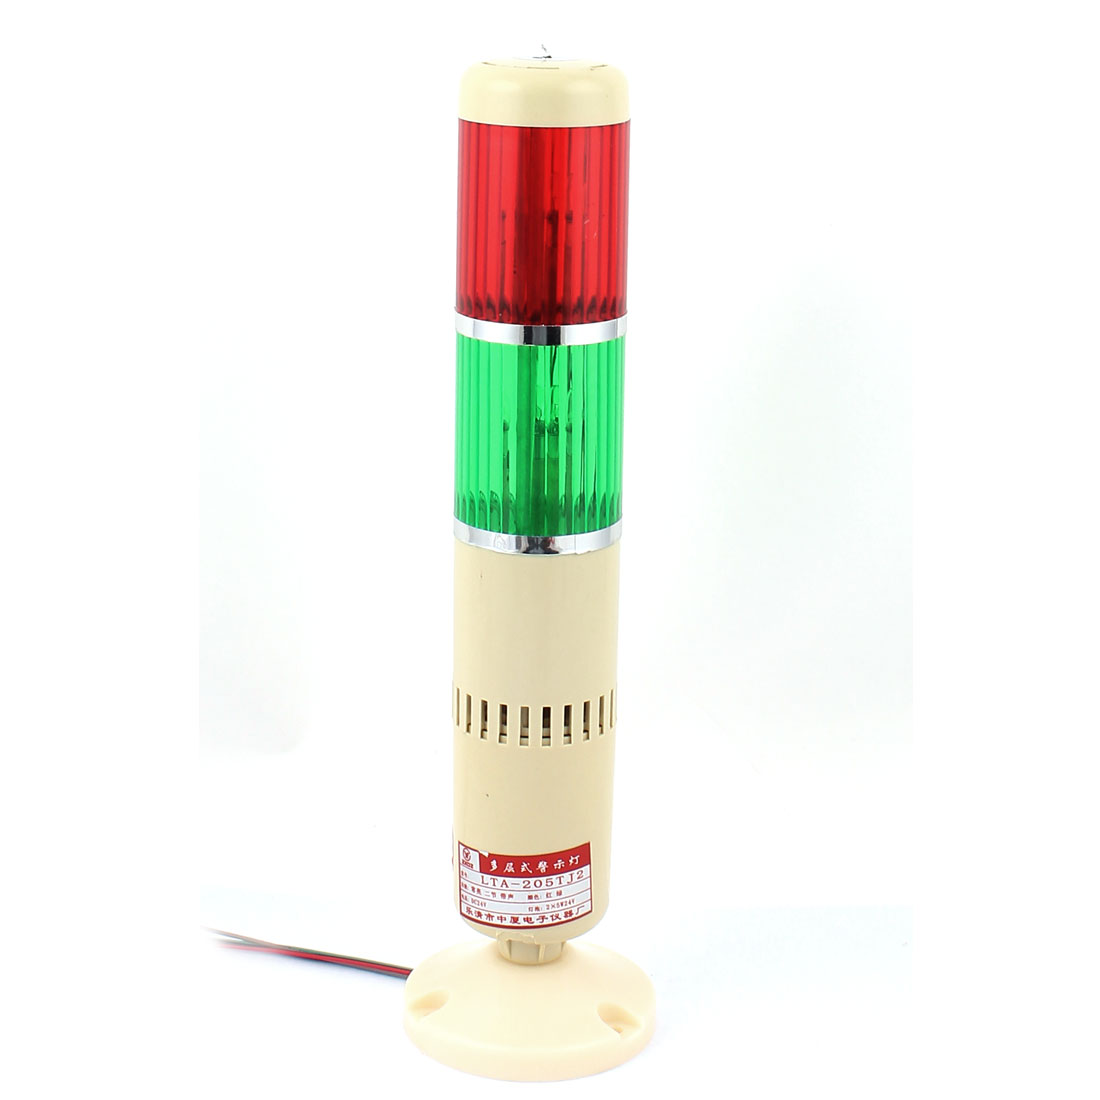 DC 24V Red Green Industrial Signal Tower Lamp Buzzer Alarm Warning Stack Light